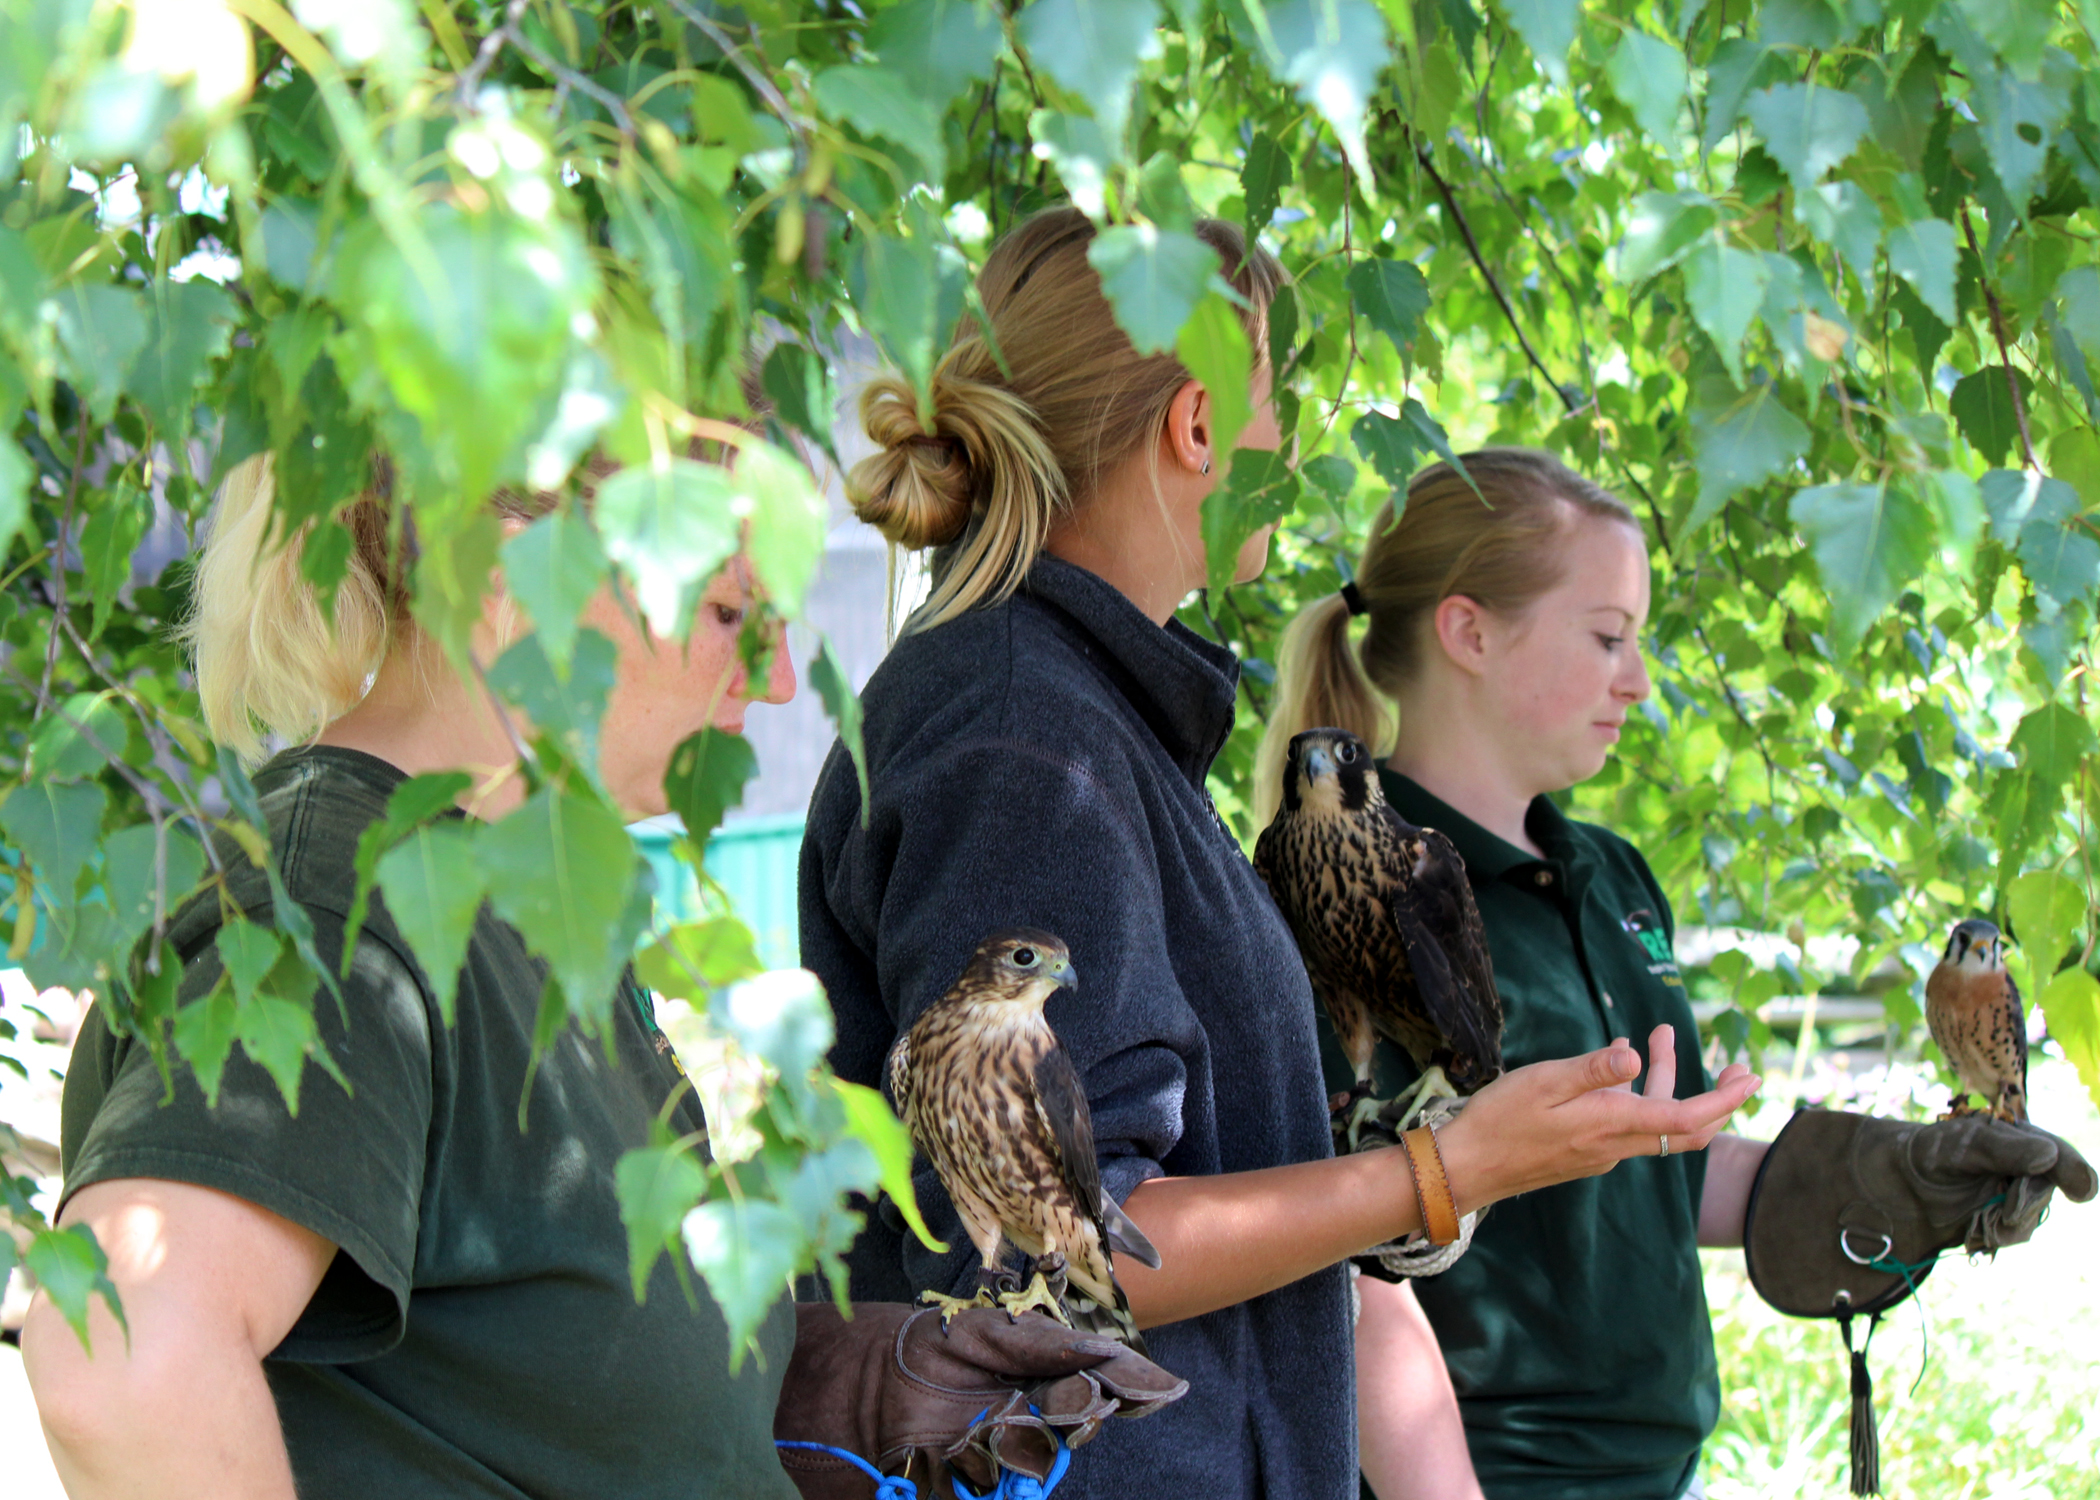 Director of Education, Abbey Krumrie holds a Merlin Falcon, Education Intern Elise Worthel holds an immature Peregrine Falcon, and Rehabilitation Intern, Victoria Schweitzer holds an American Kestrel falcon.